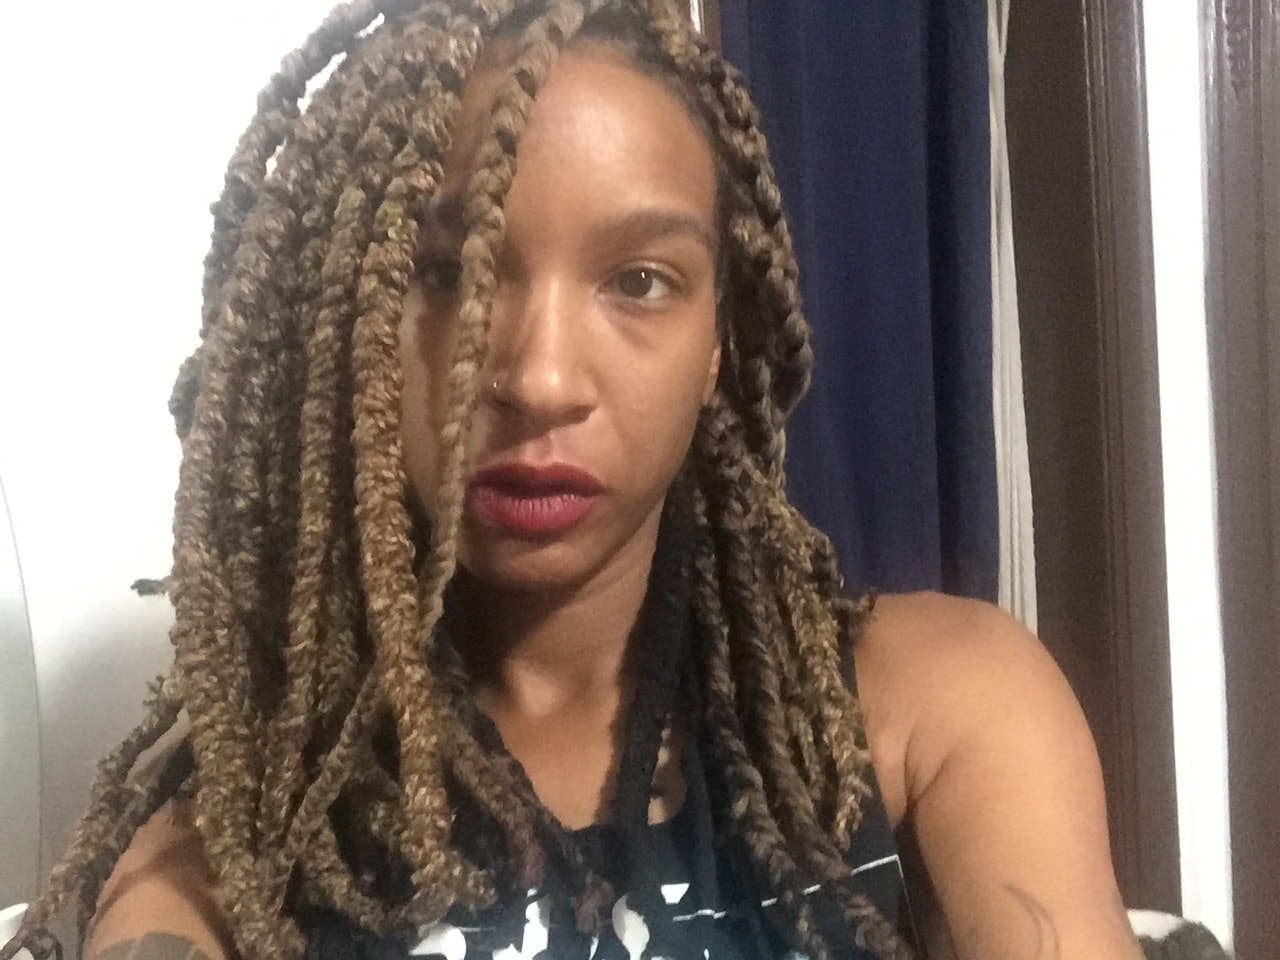 I Tried Yarn Braids For The First Time Learned A Lot About The